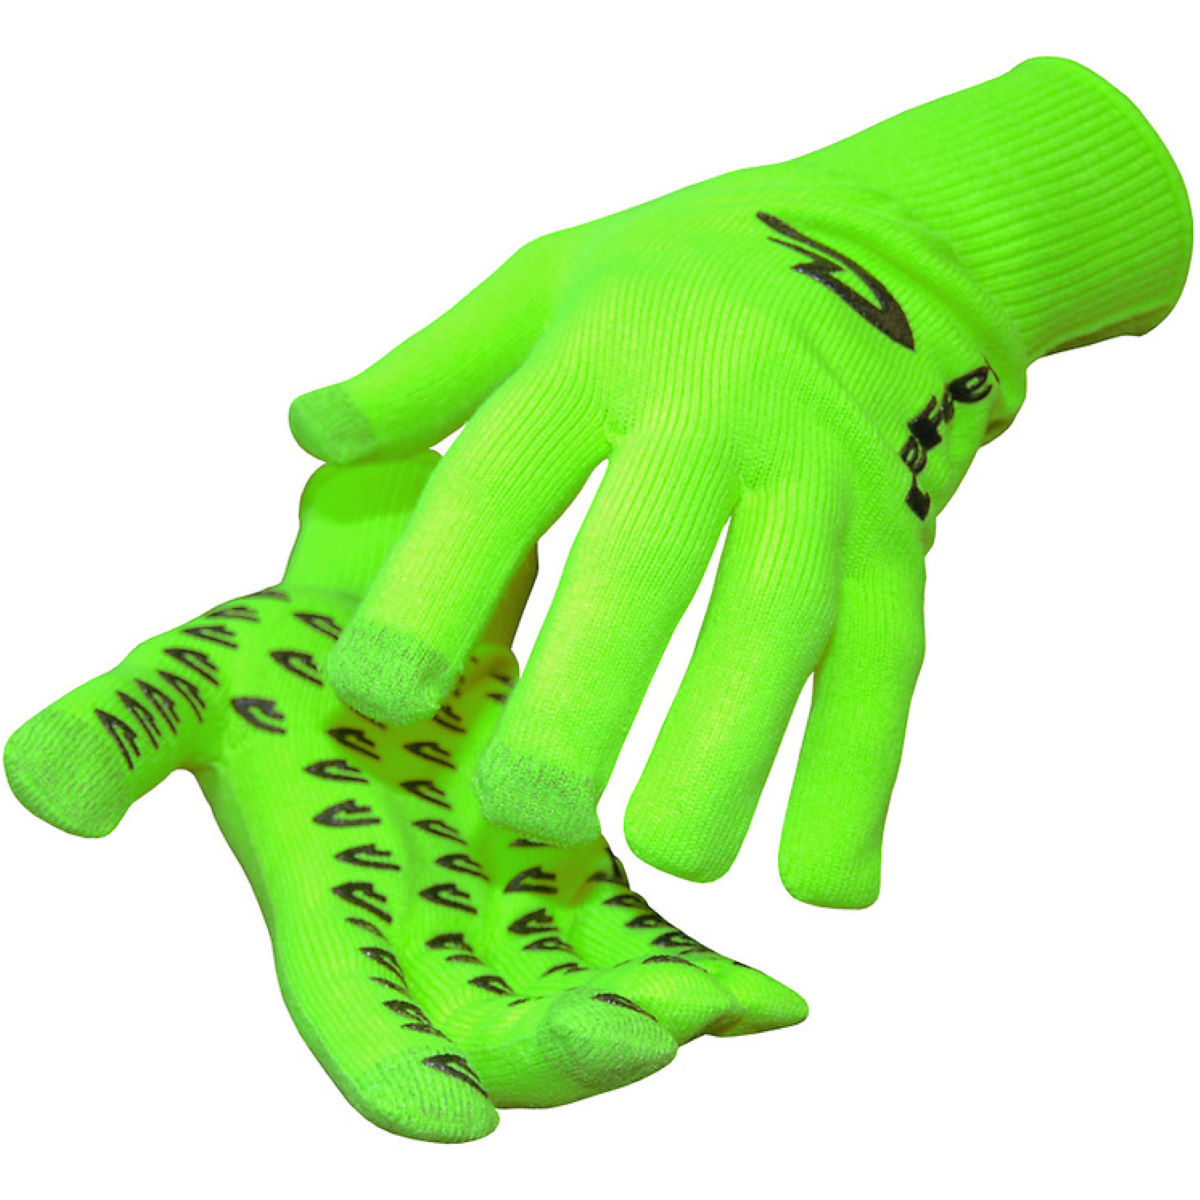 Gants DeFeet E-Touch Neon Dura - S Hi-Vis Green/Black Gants